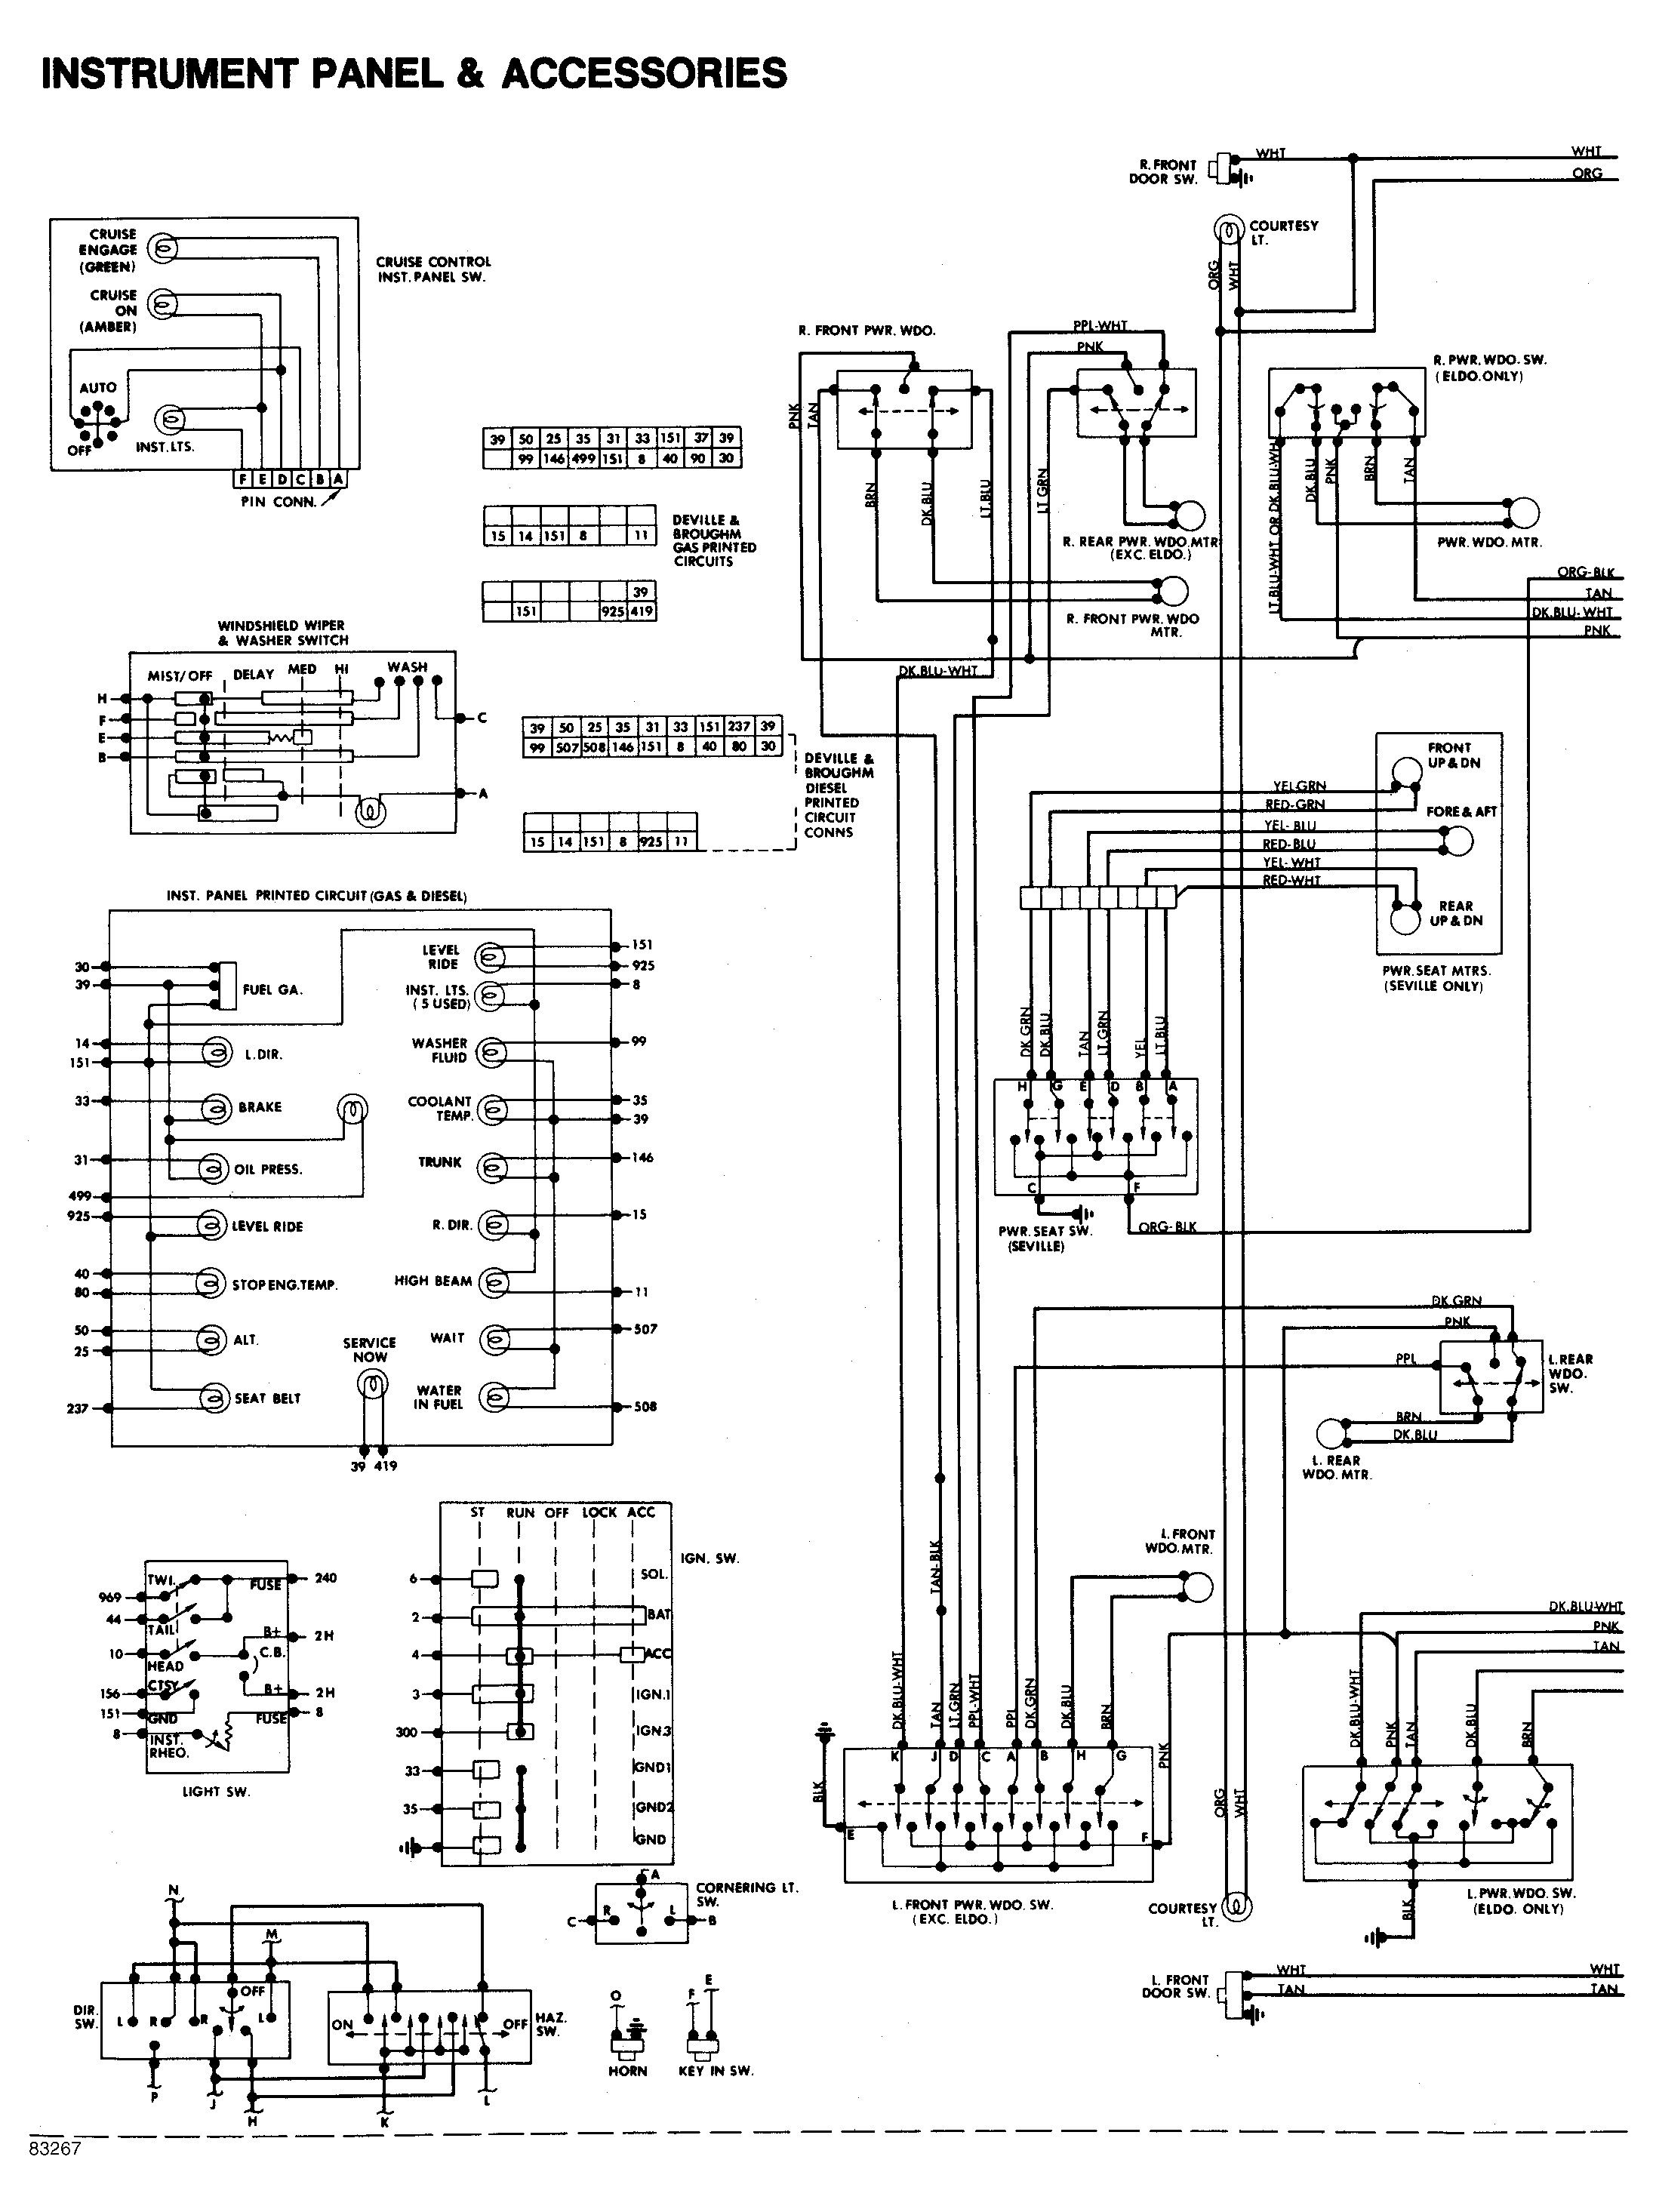 daewoo nexia fuse box wiring diagram rh 99 fomly be